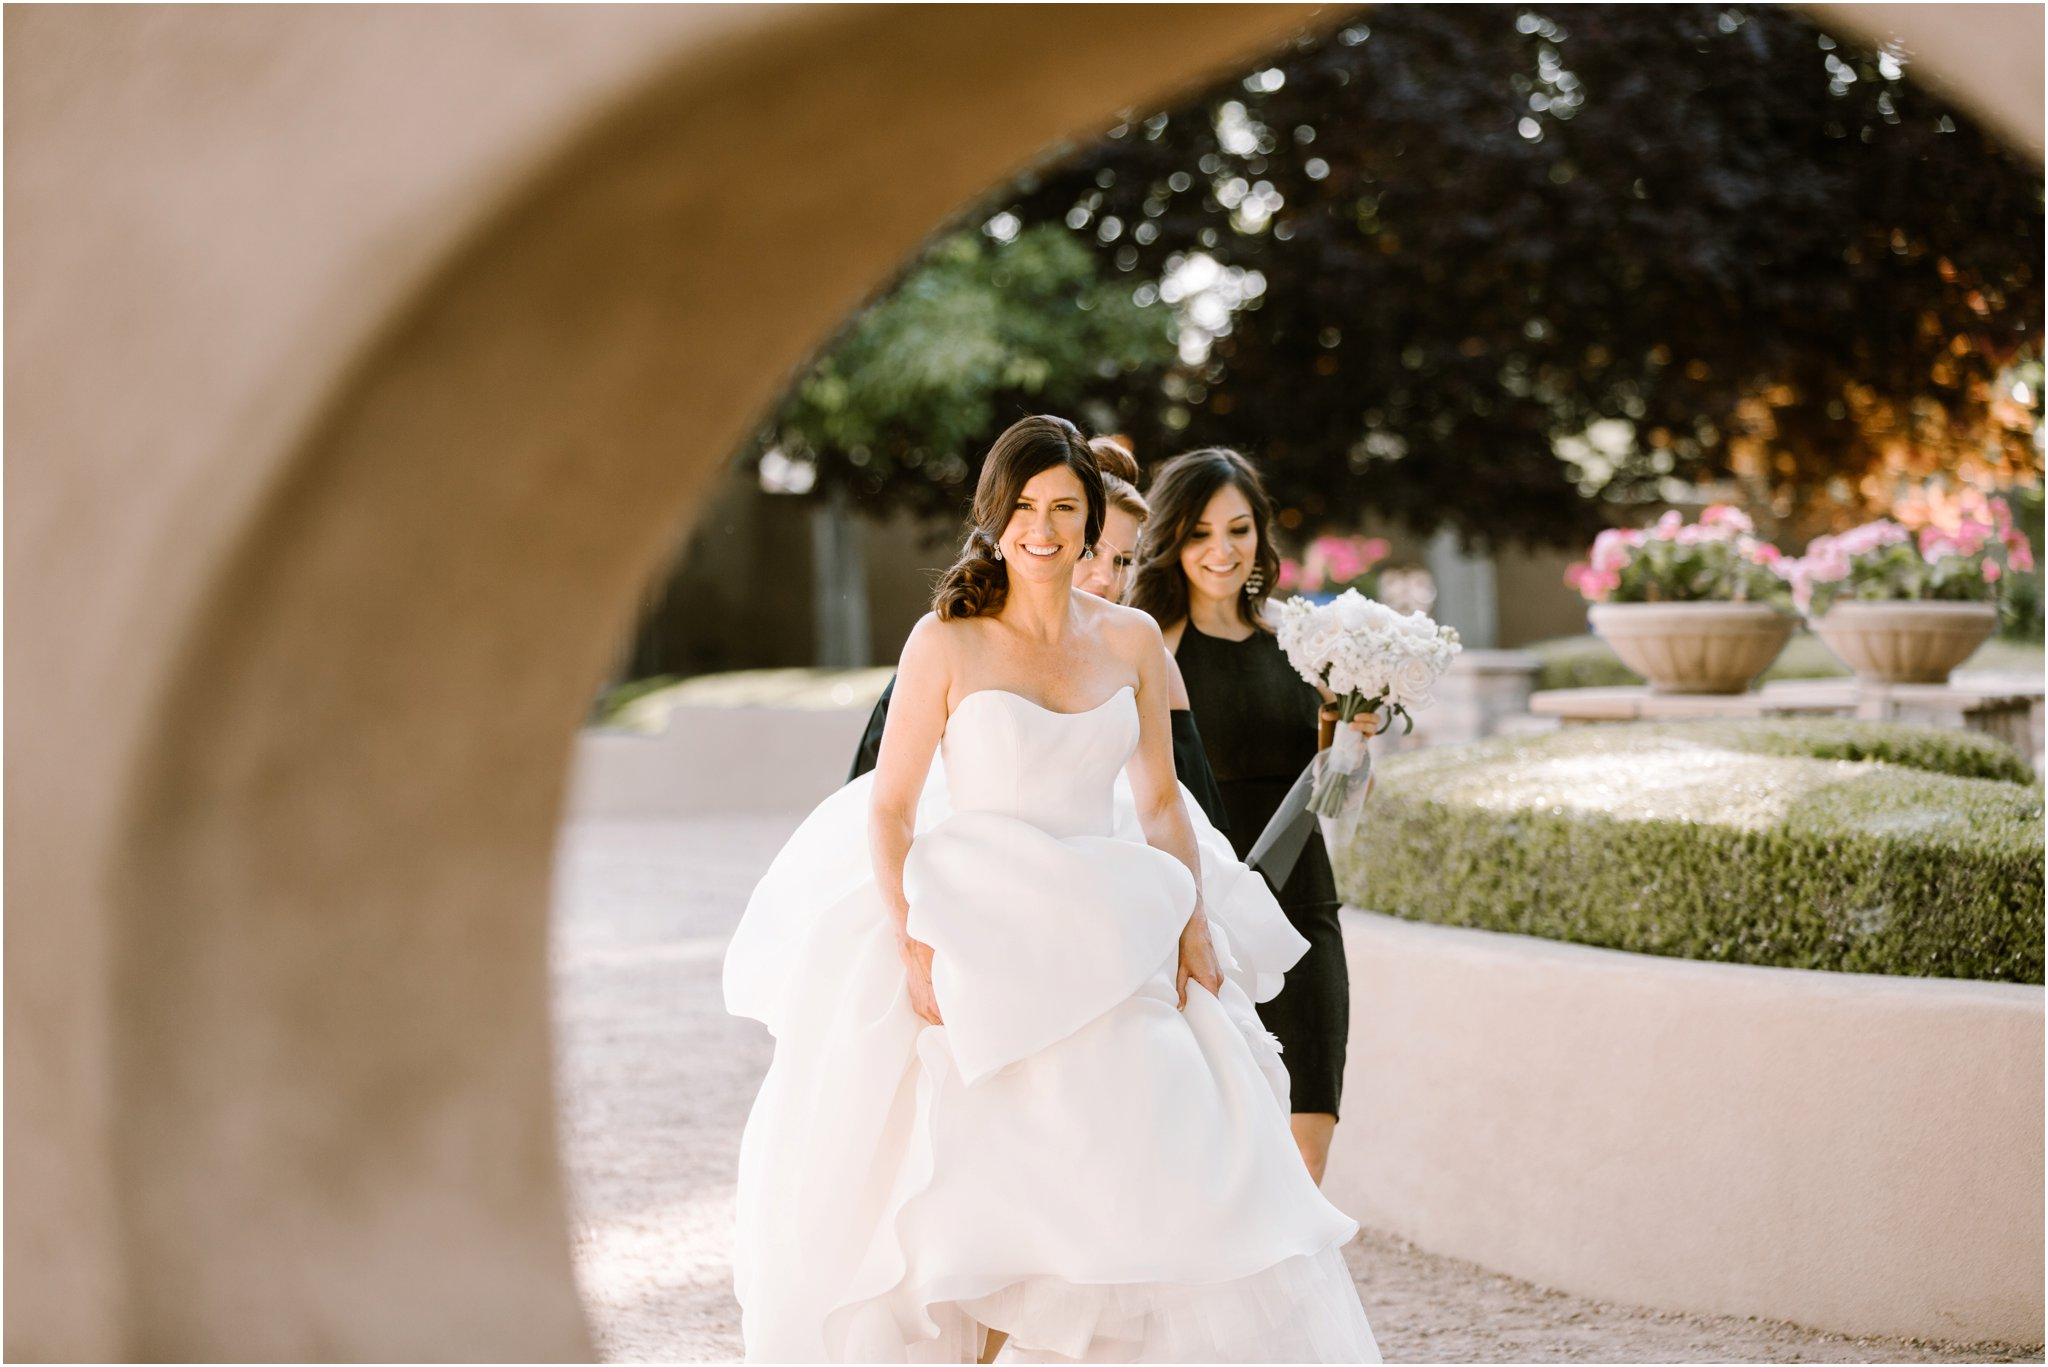 0200Casa Rodena Winery Wedding, Inn and Spa at Loretto wedding, Santa Fe wedding photographers, blue rose photography